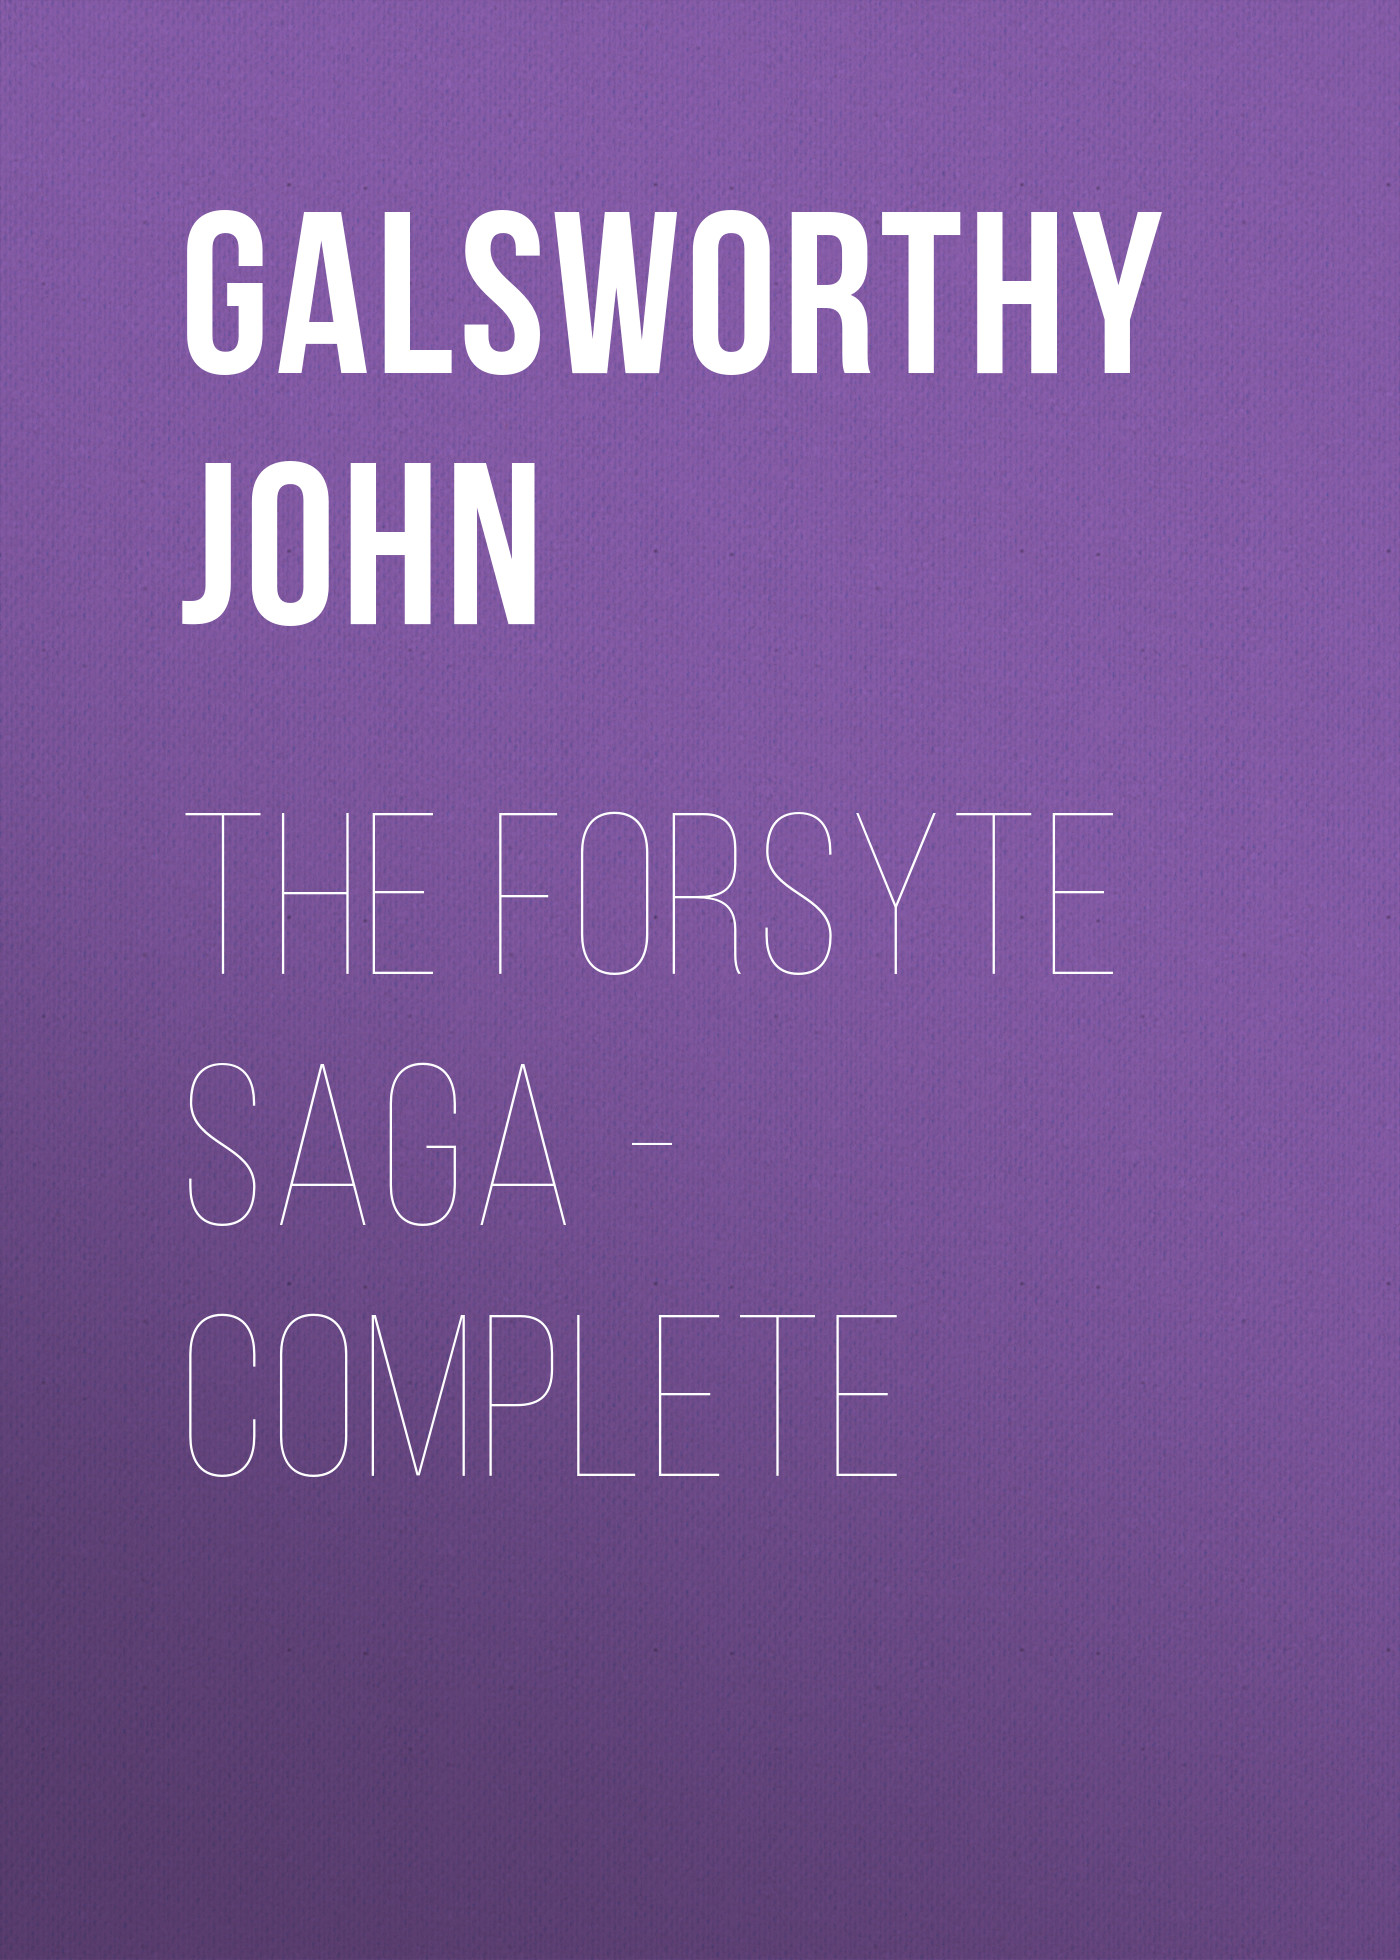 Galsworthy John The Forsyte Saga - Complete the forsyte saga